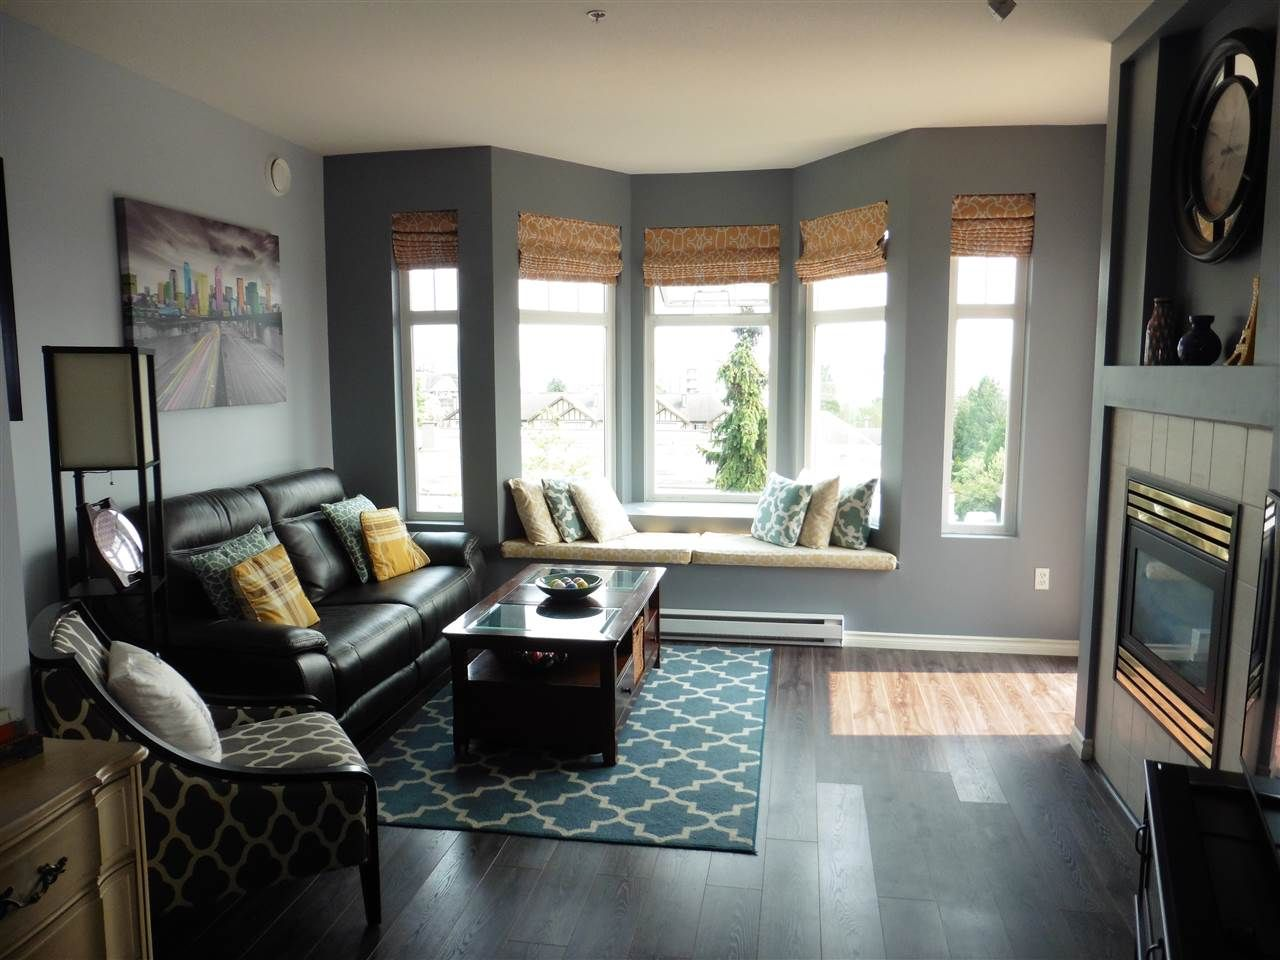 """Photo 3: Photos: 307 580 TWELFTH Street in New Westminster: Uptown NW Condo for sale in """"THE REGENCY"""" : MLS®# R2193816"""